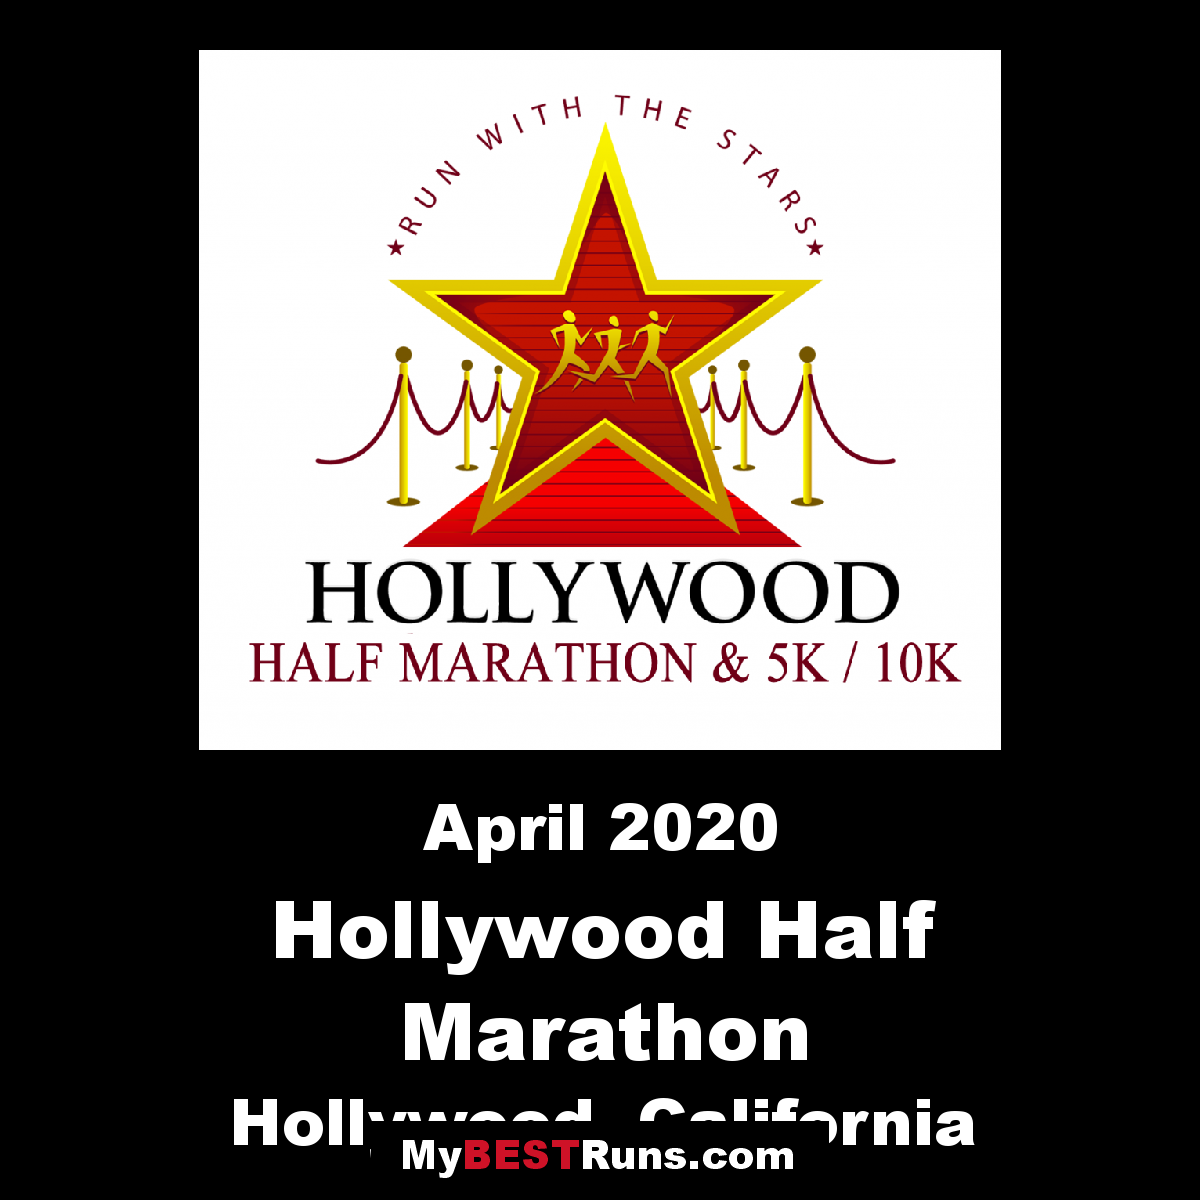 Hollywood Half Marathon